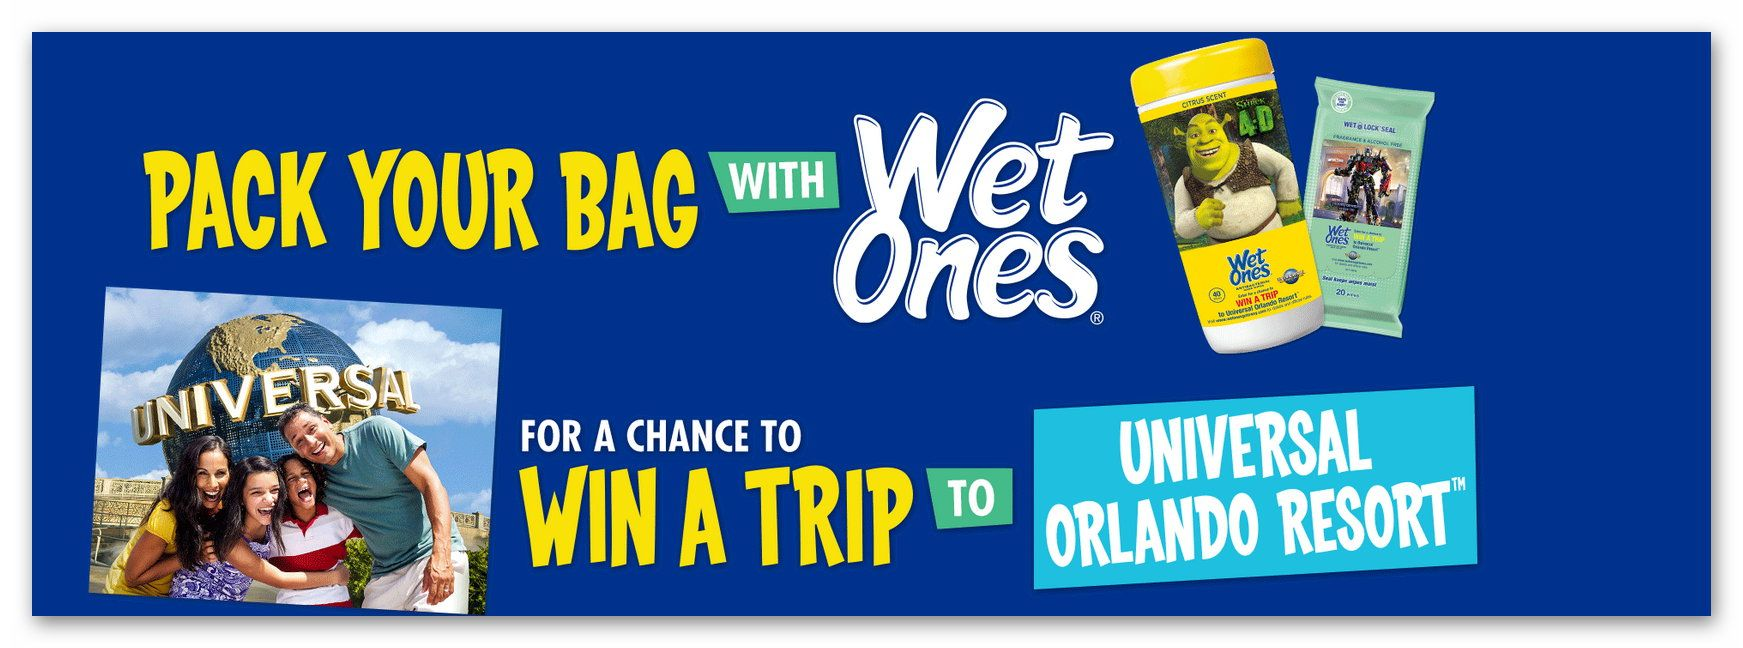 WetOnes Wish I Had A Trip To Universal Orlando Sweepstakes